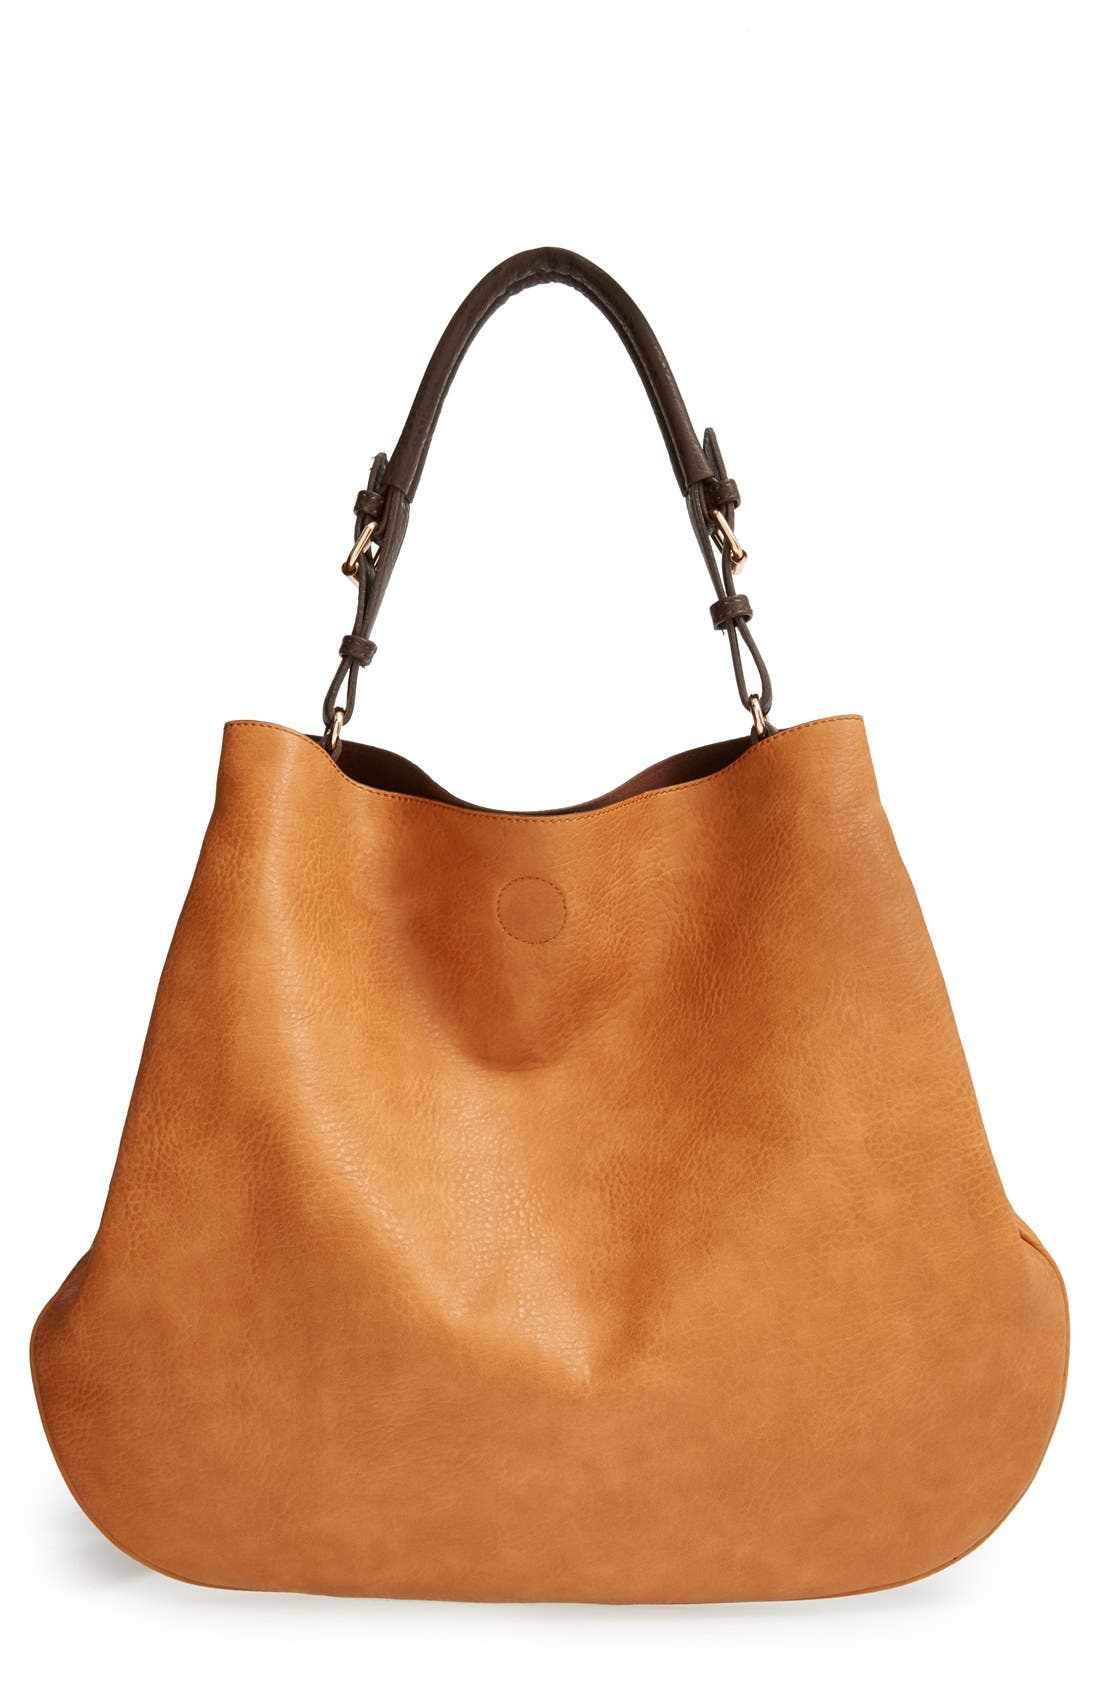 Alternate Image 1 Selected - Sole Society 'Capri' Faux Leather Tote